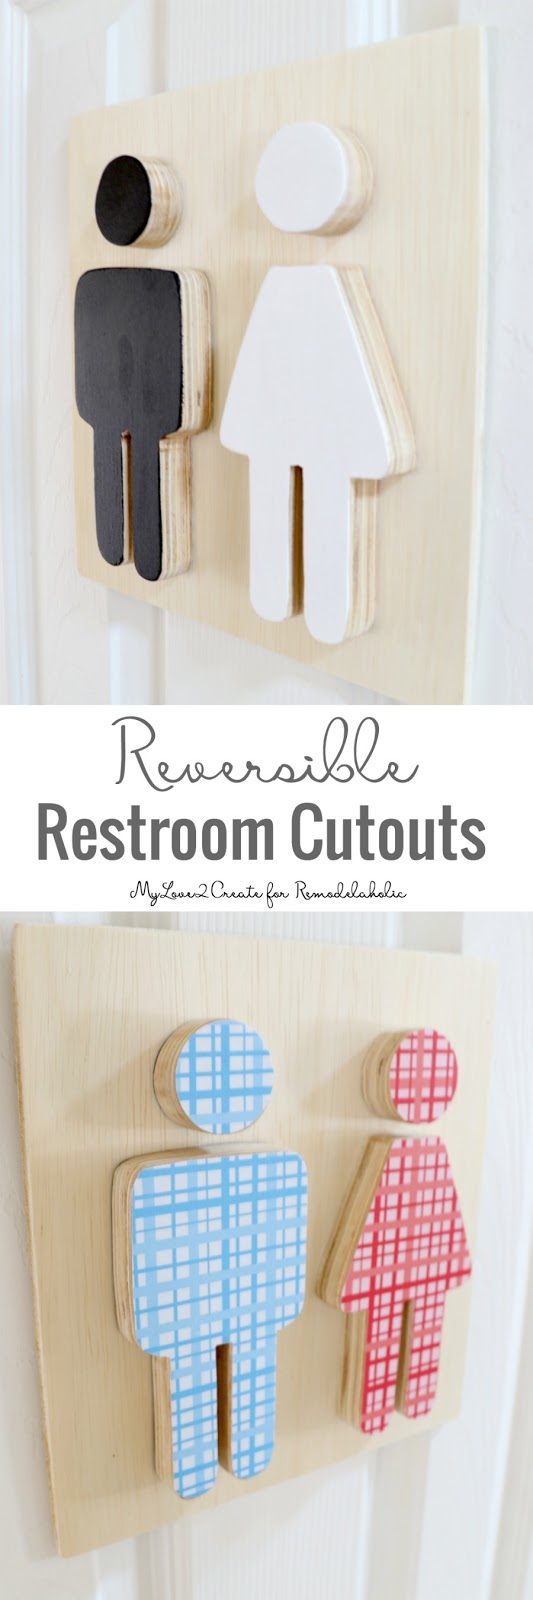 Put your plywood scraps to work and help guests know which door is the restroom with these adorable and easy boy-girl restroom cutout signs.